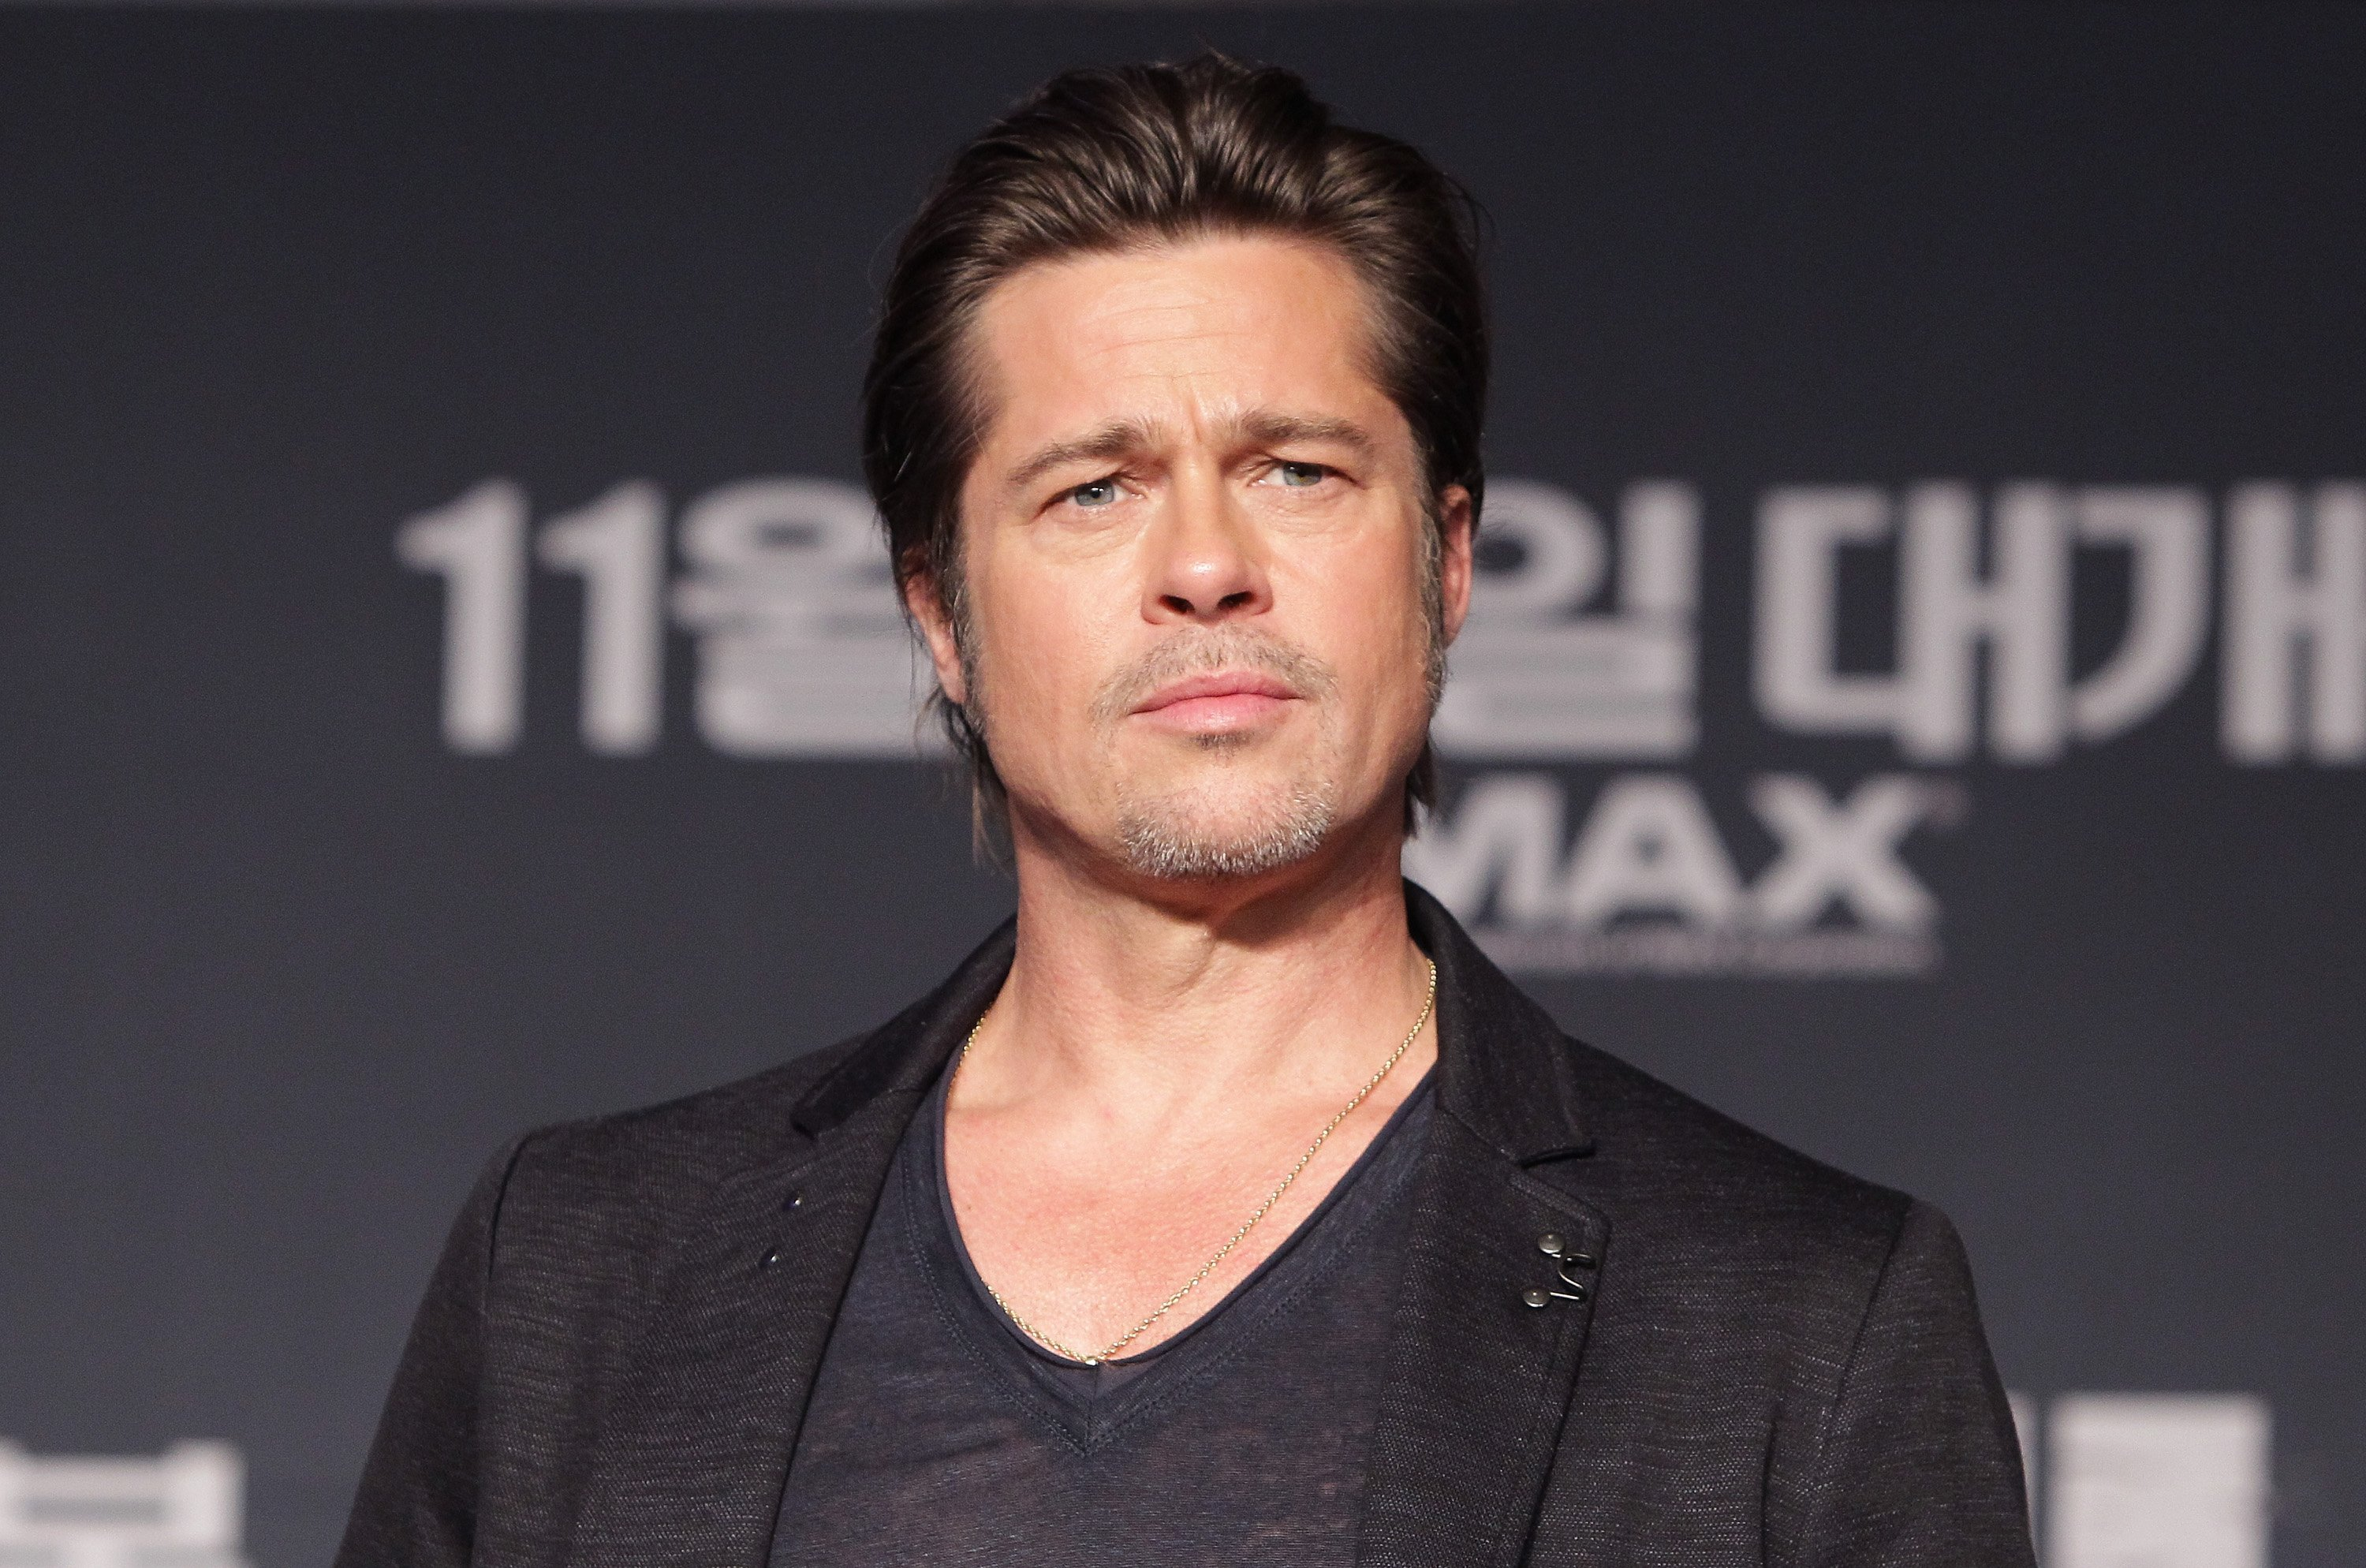 Brad Pitt attends the 'Fury' Press Conference at Conrad Hotel on November 13, 2014 in Seoul, South Korea | Photo: Getty Images